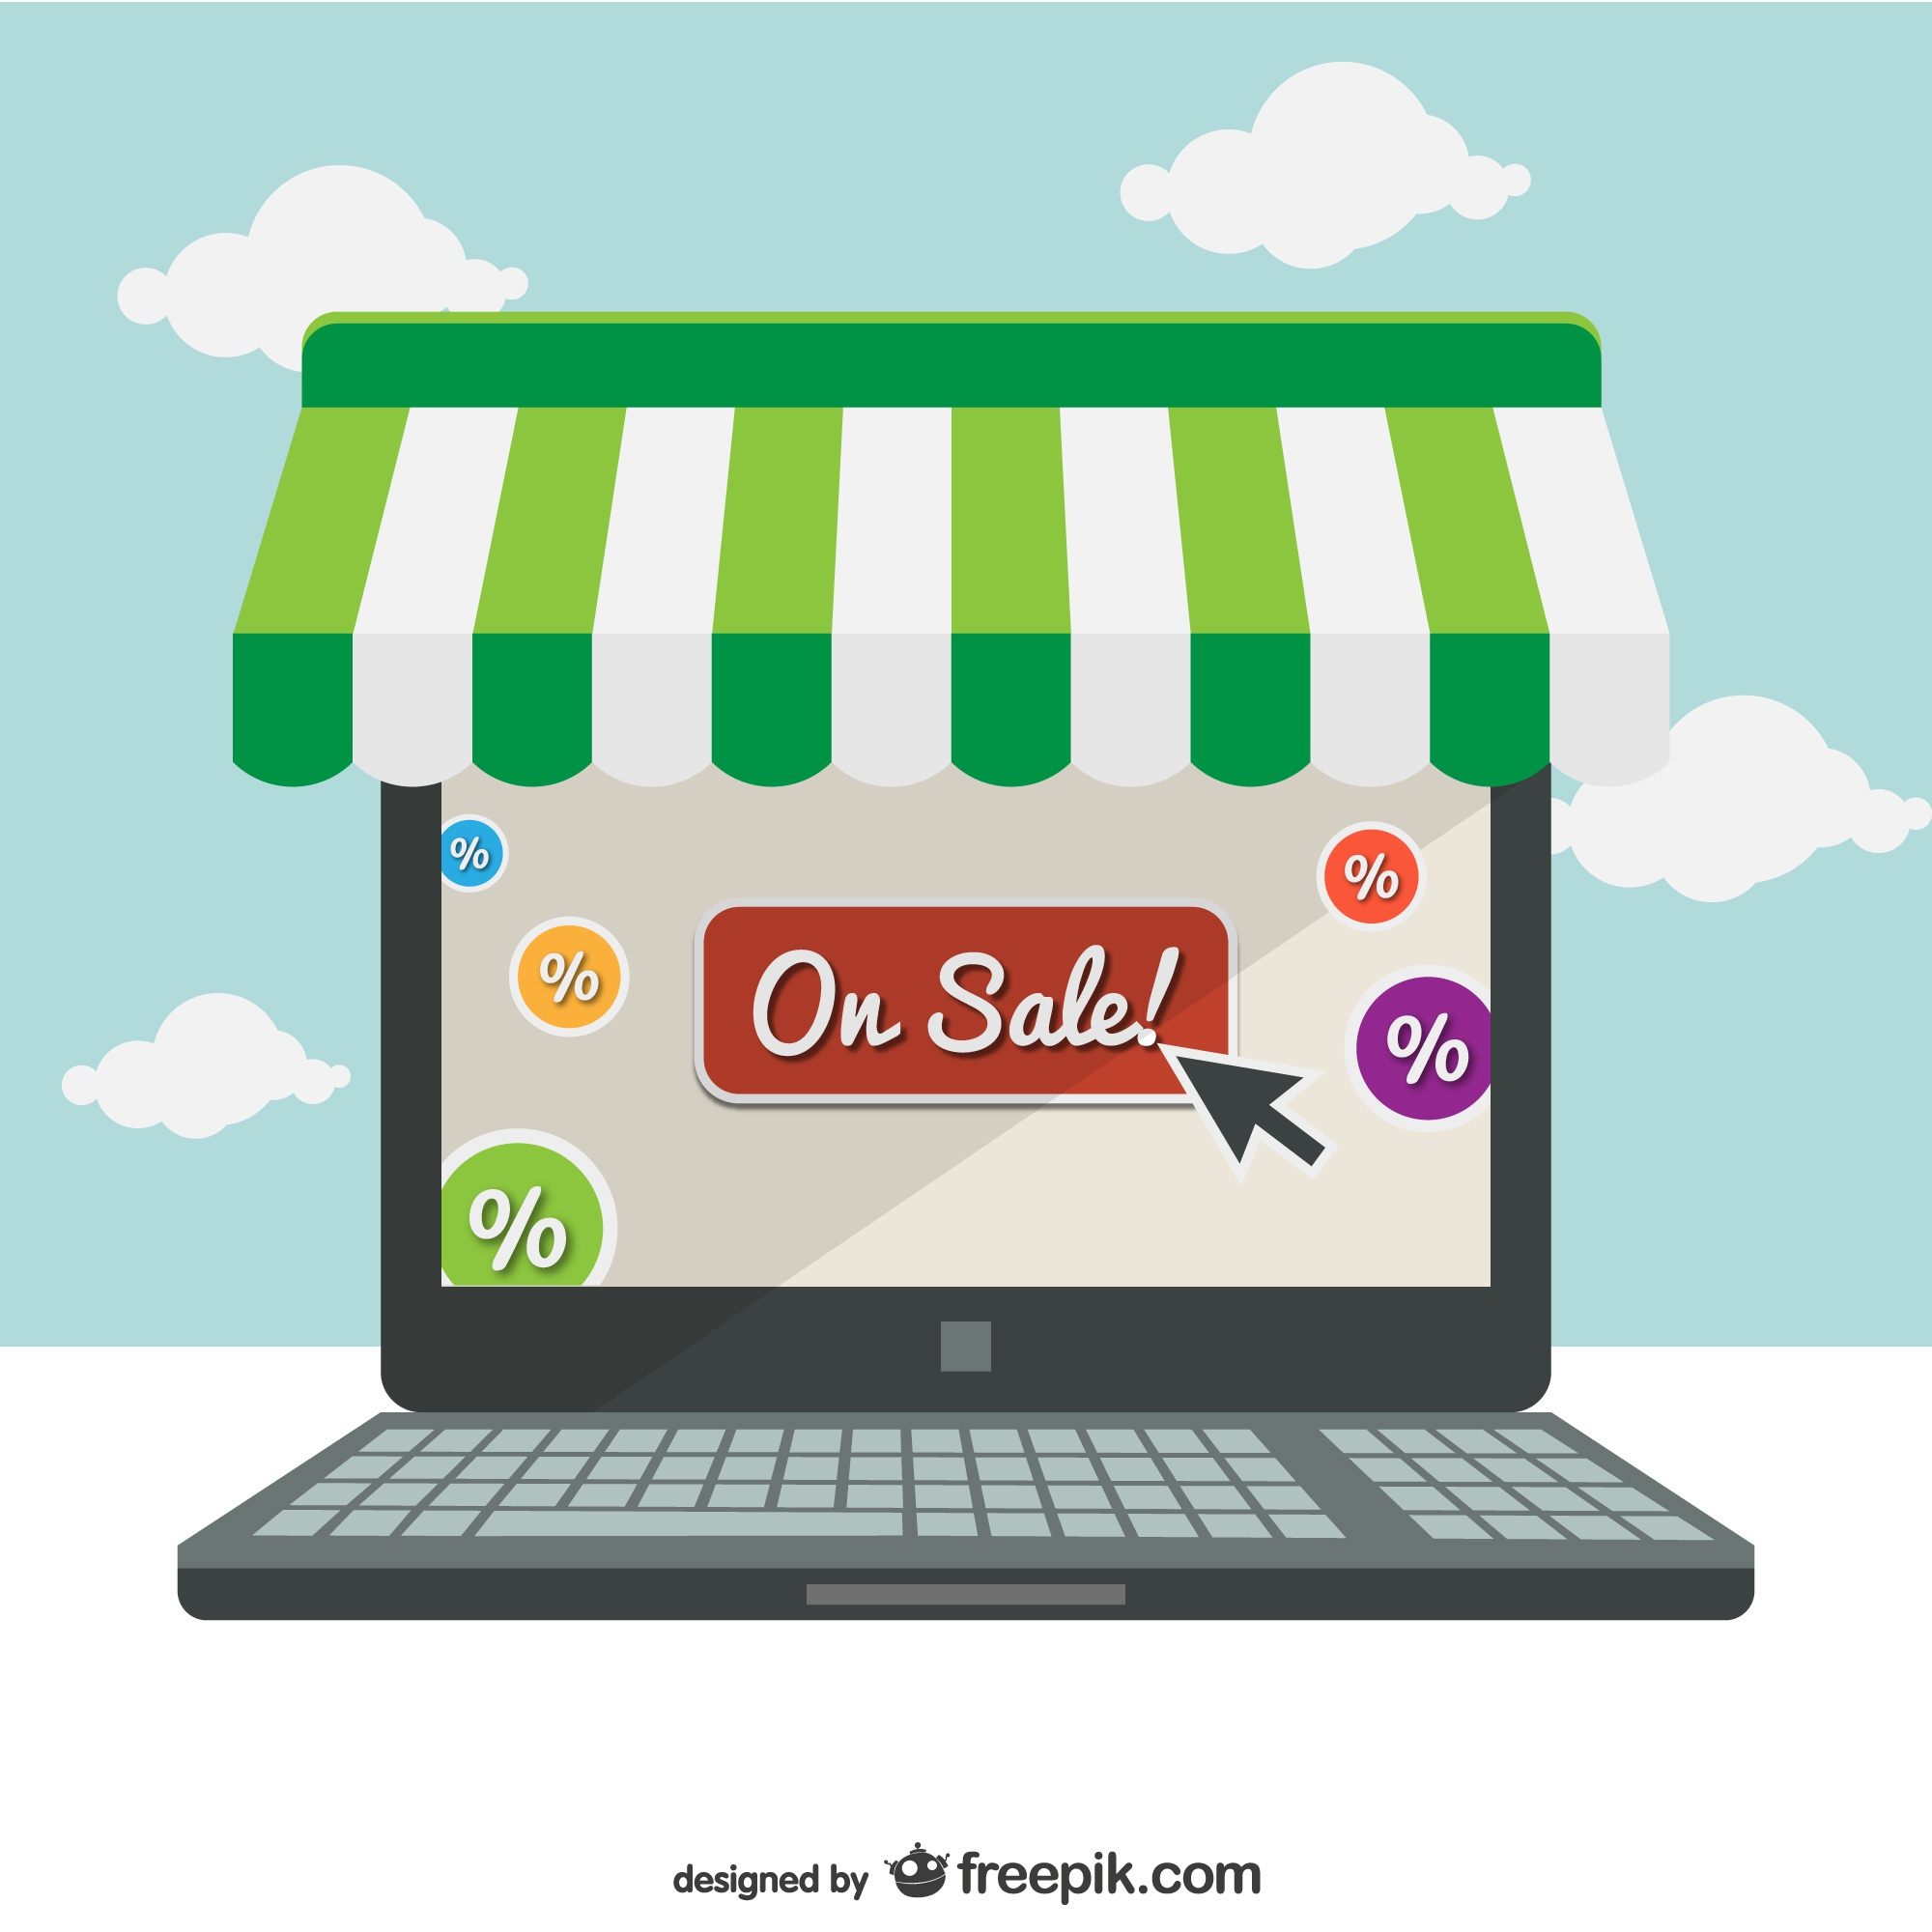 Supermarket online laptop concept illustration